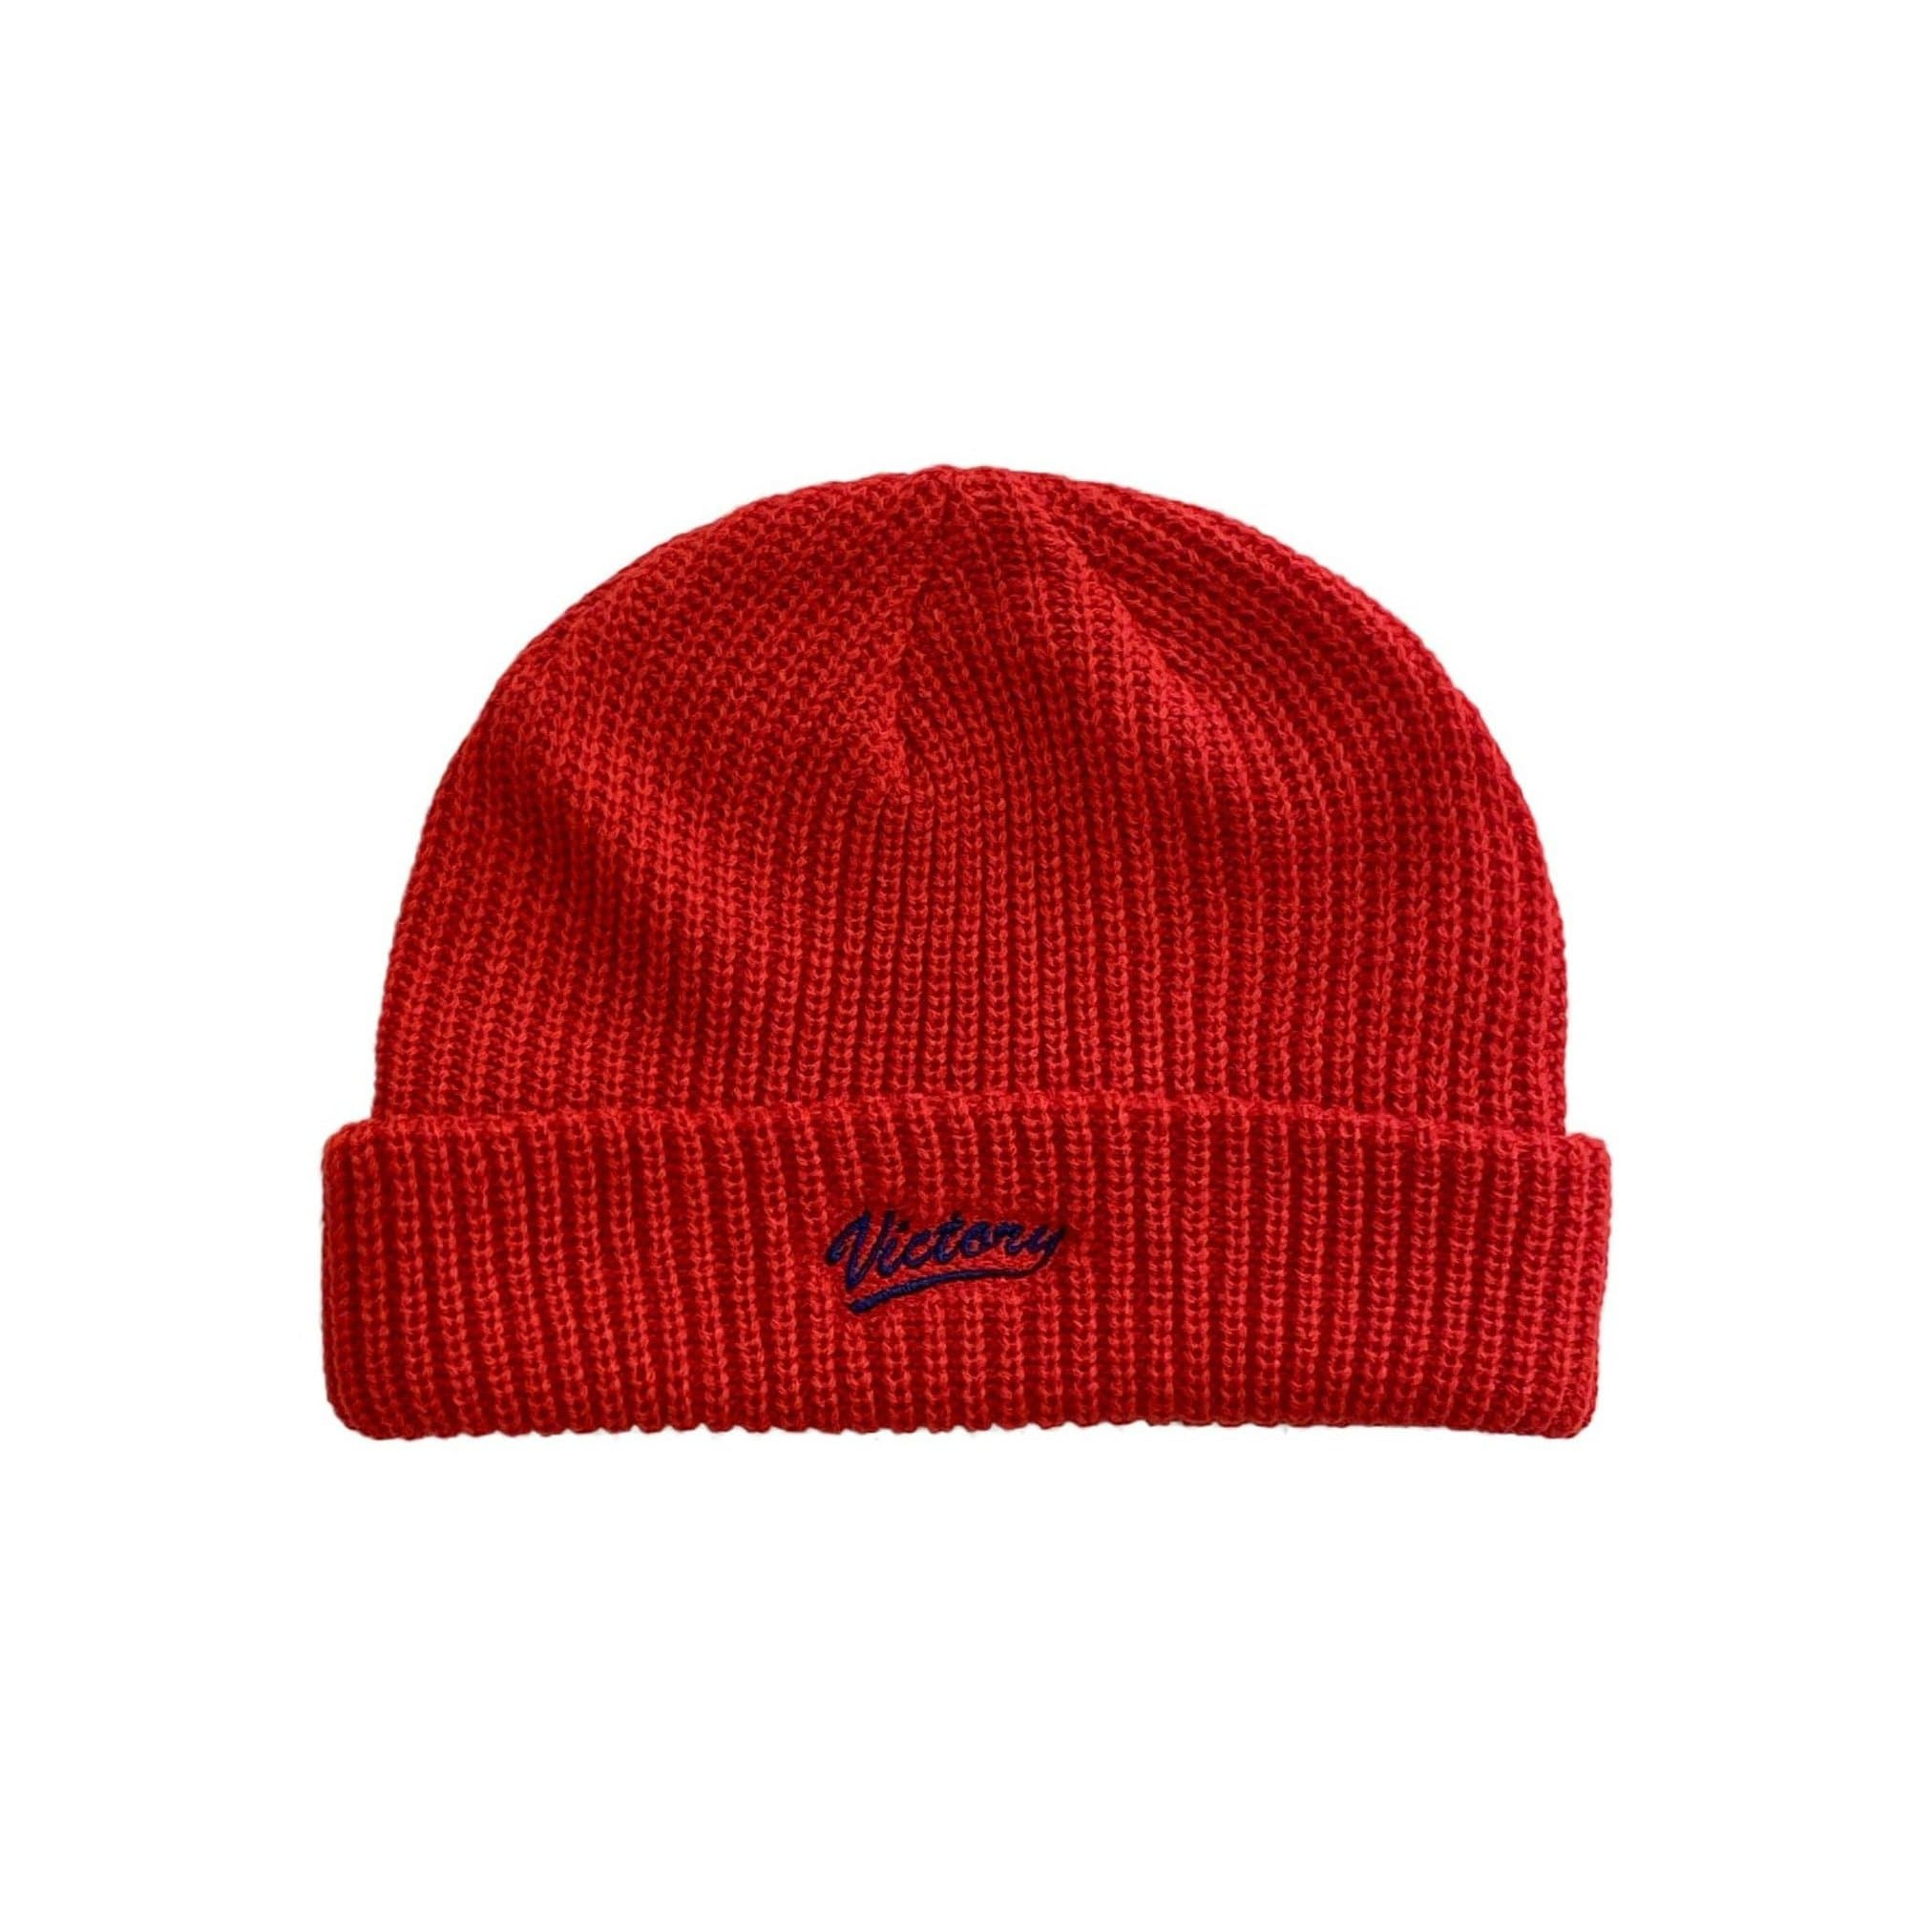 PLAYER BEANIE - RED